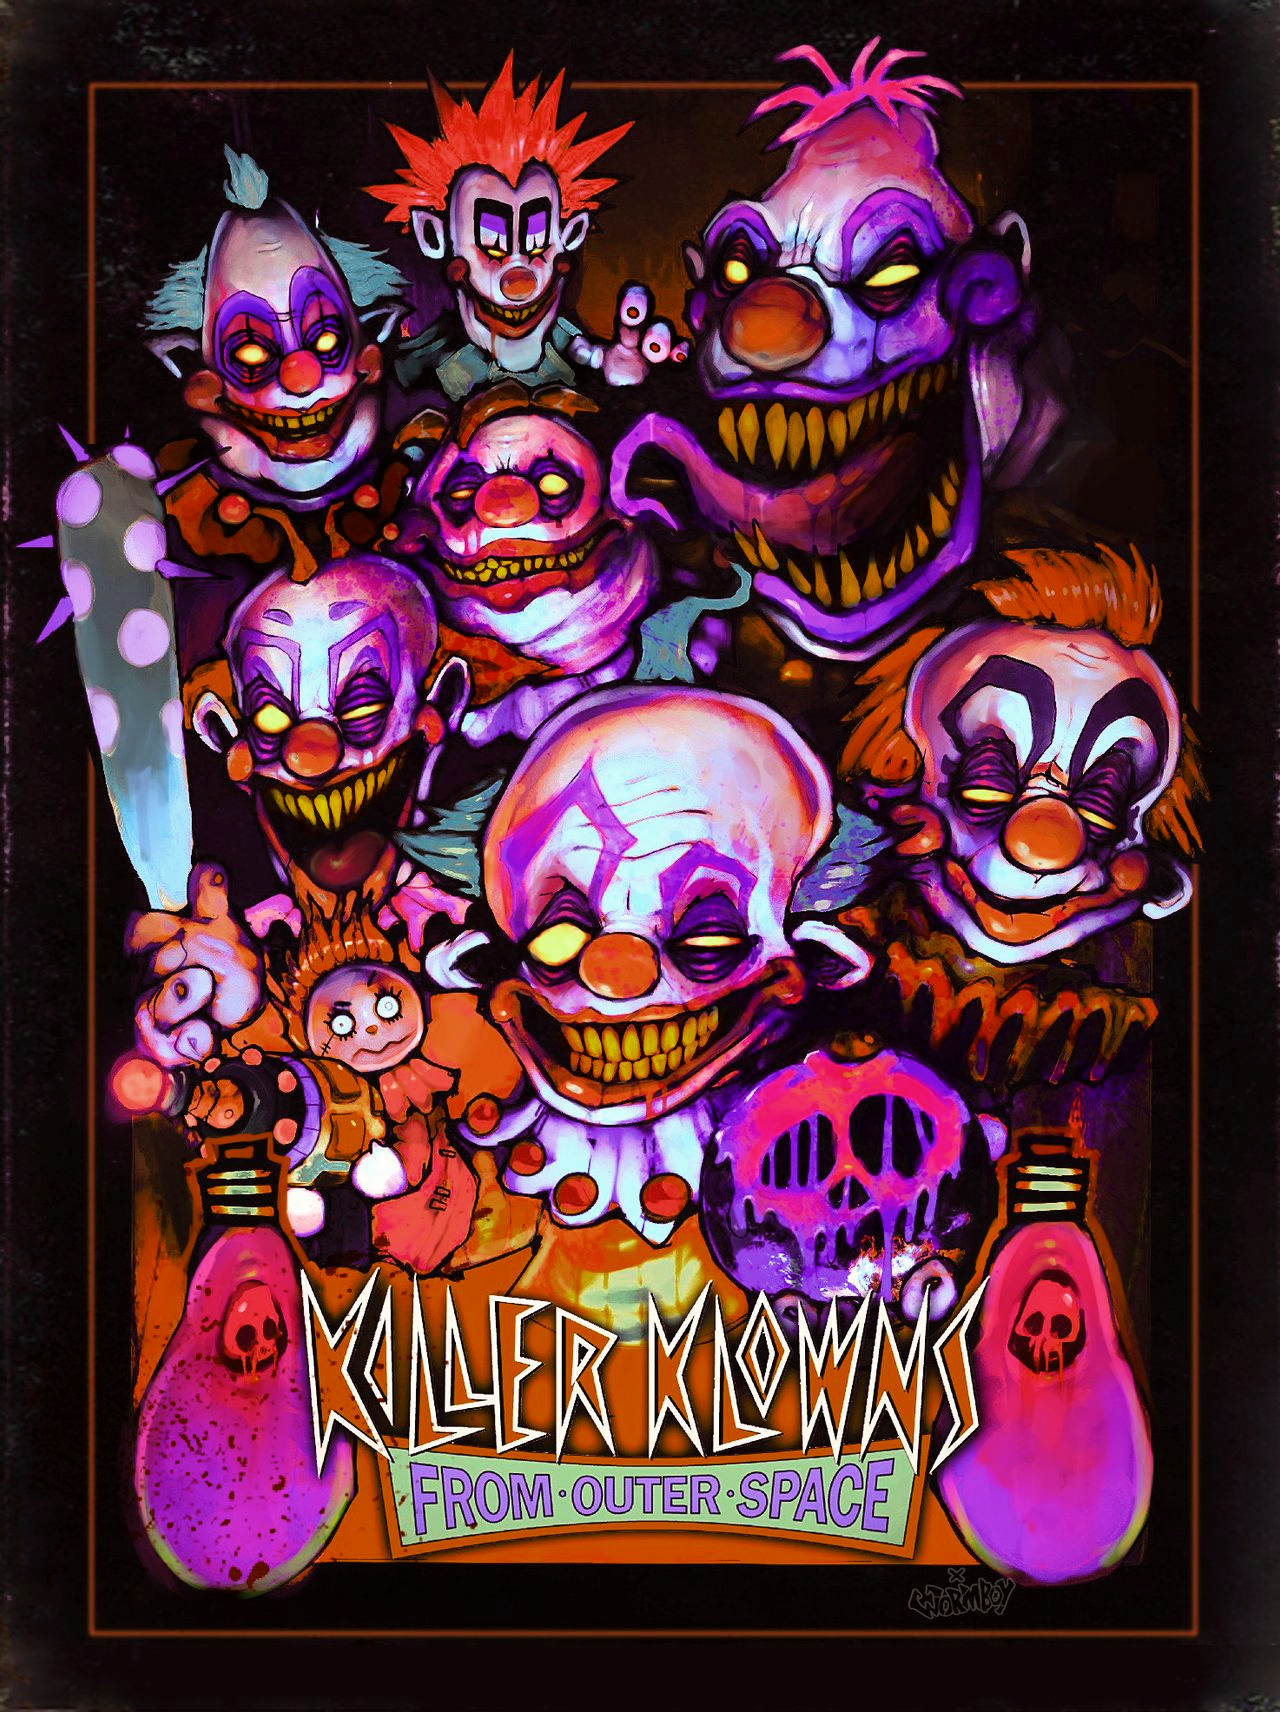 KLLER KLOWNS FROM OUTER SPACE